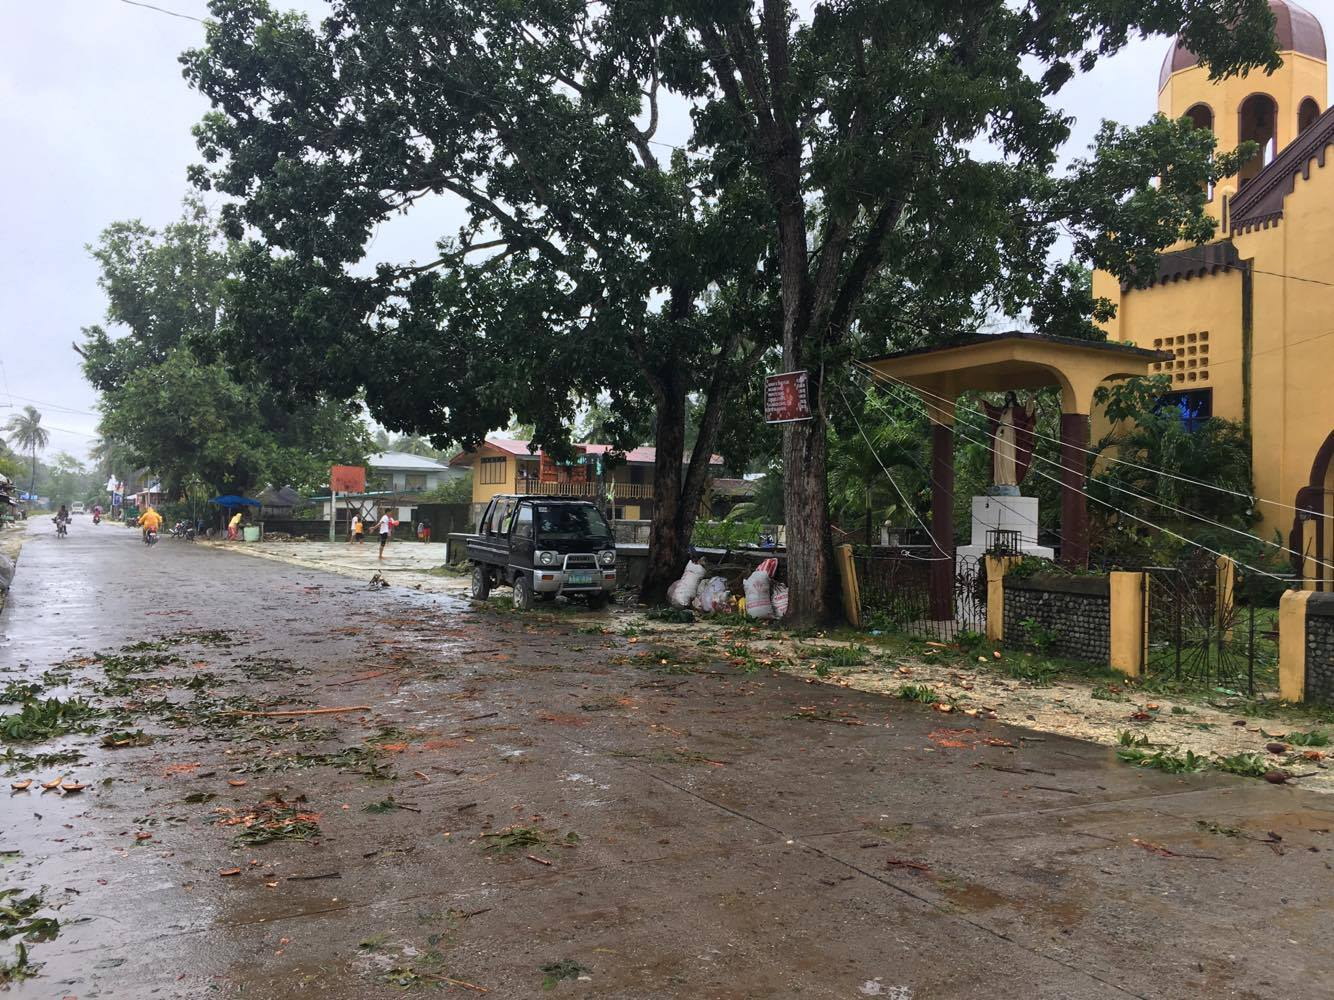 AFTER AURING. Power lines on a street in Siargao Island in Surigao del Norte are down. Photo by Perry Paul Lamanilao